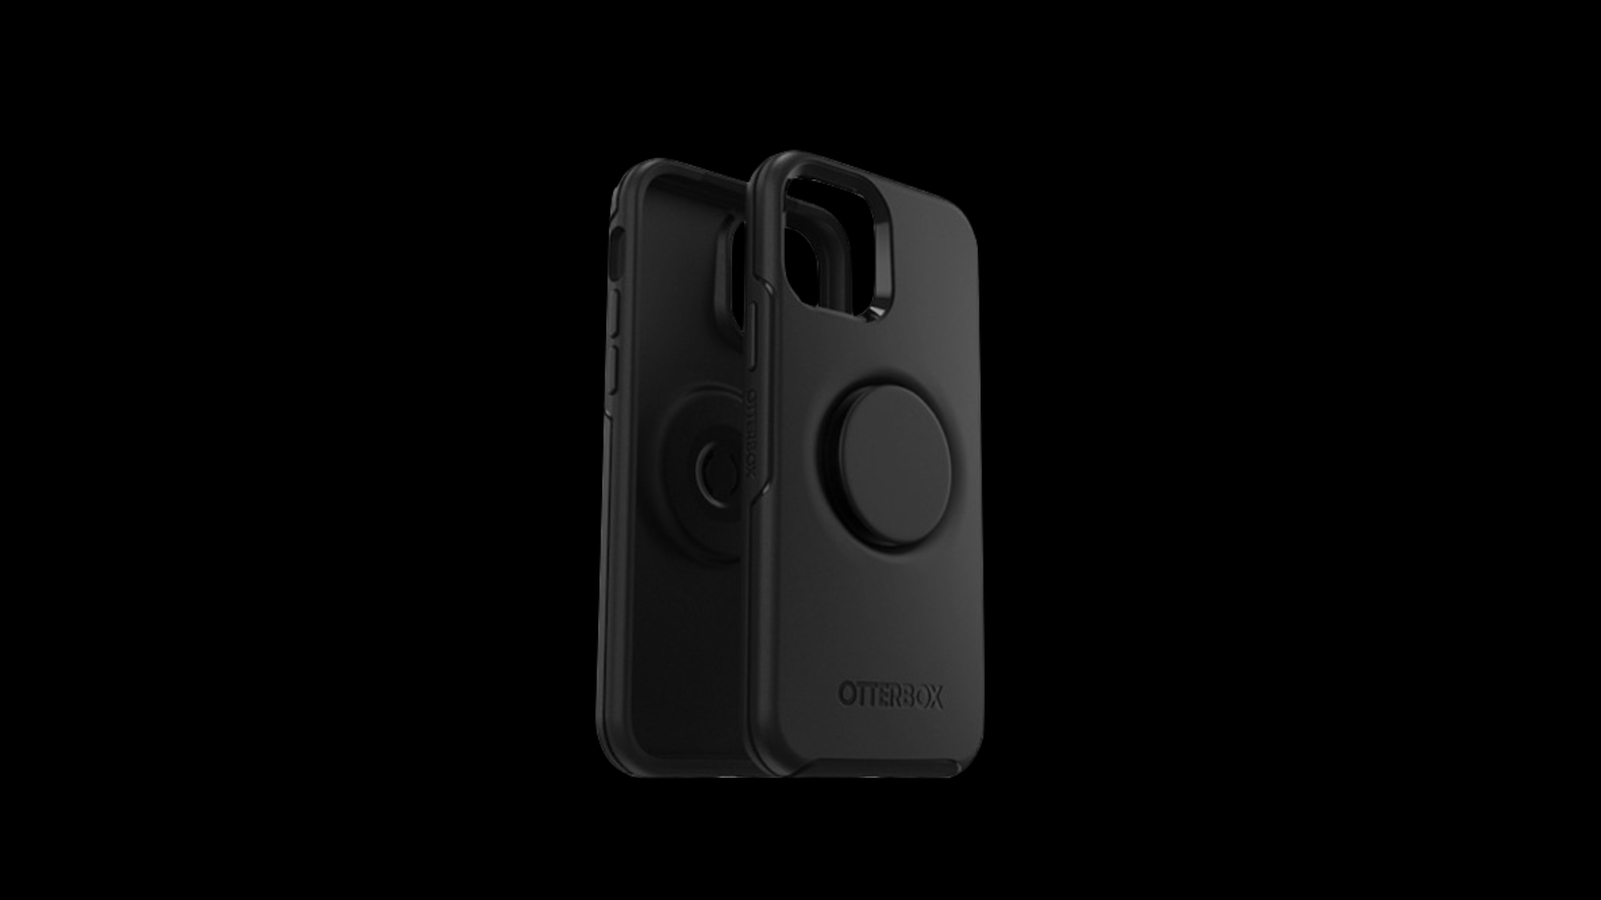 OtterBox Otter + Pop Symmetry Series iPhone 12 & 12 Pro case has a PopSockets PopGrip